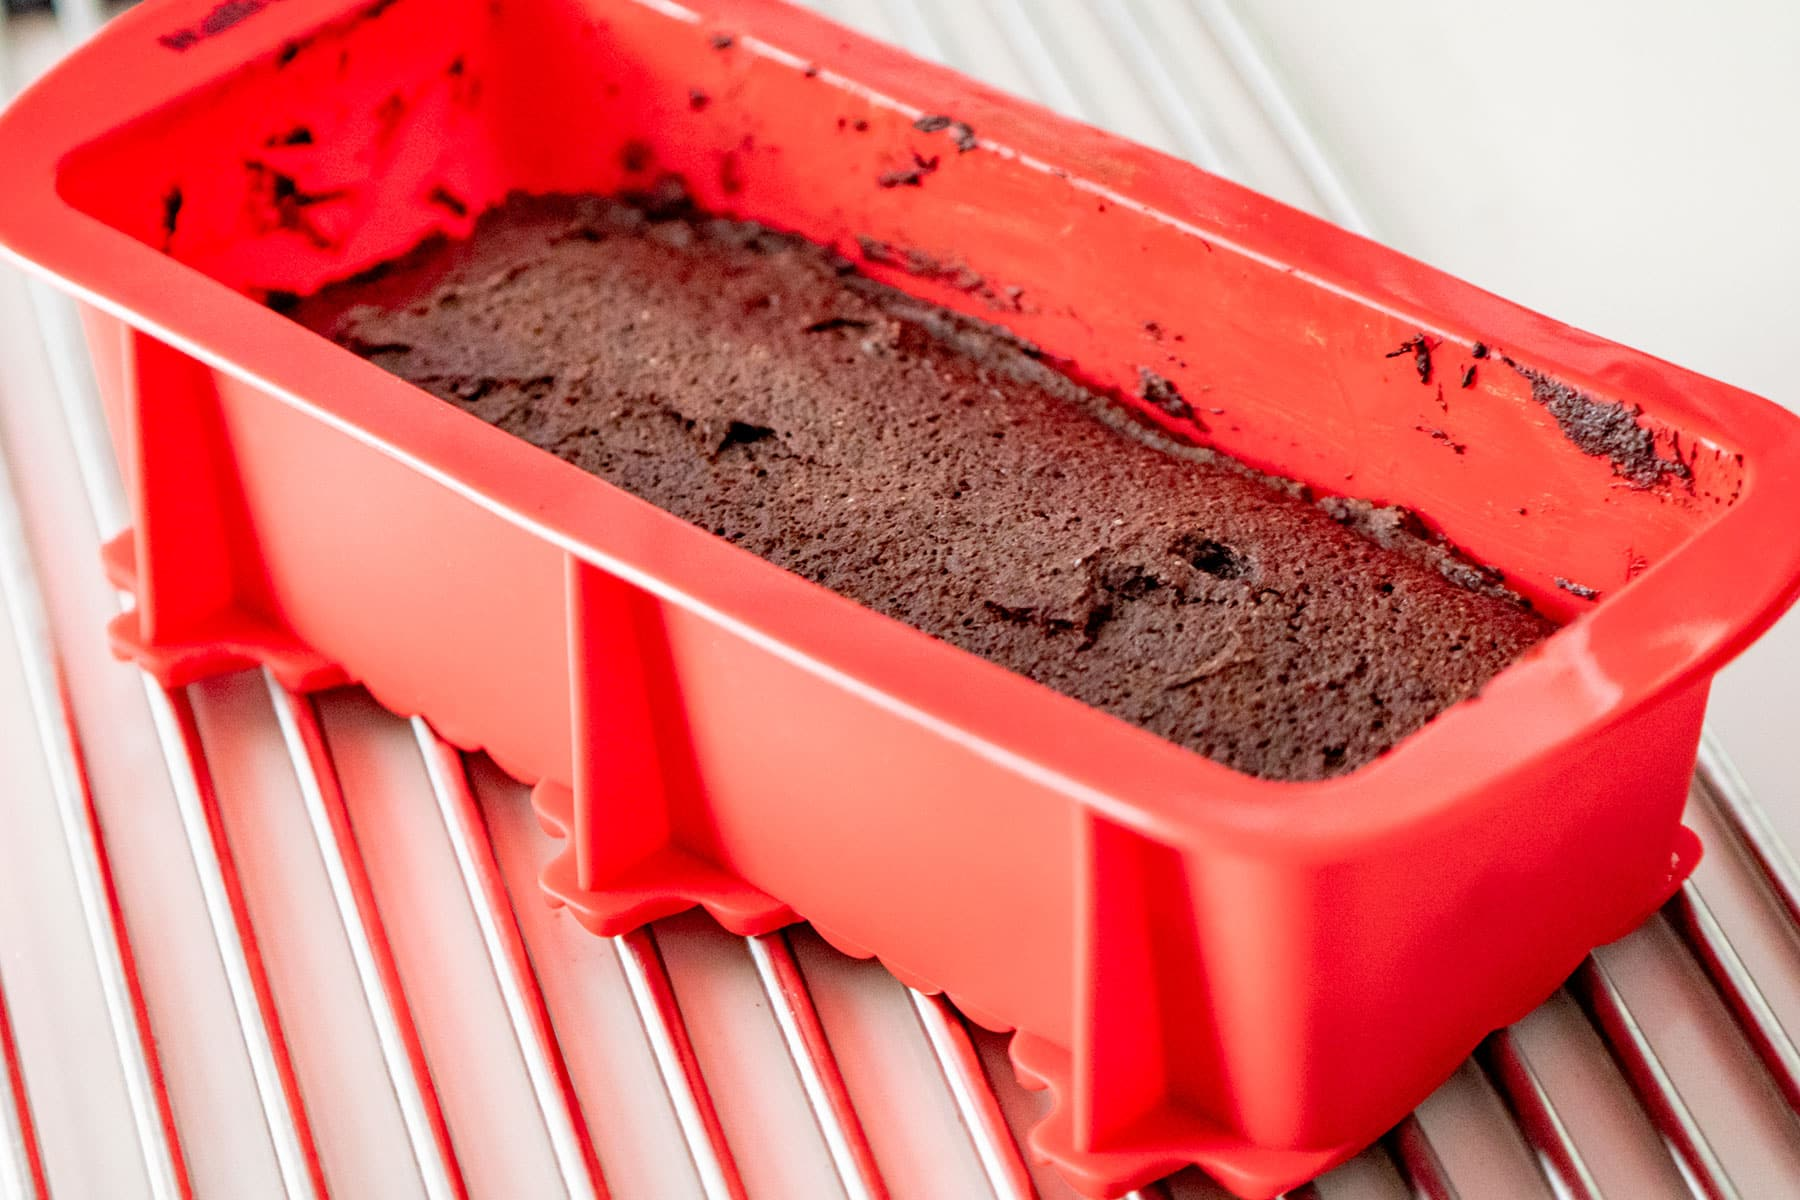 Cooling cake on rack.